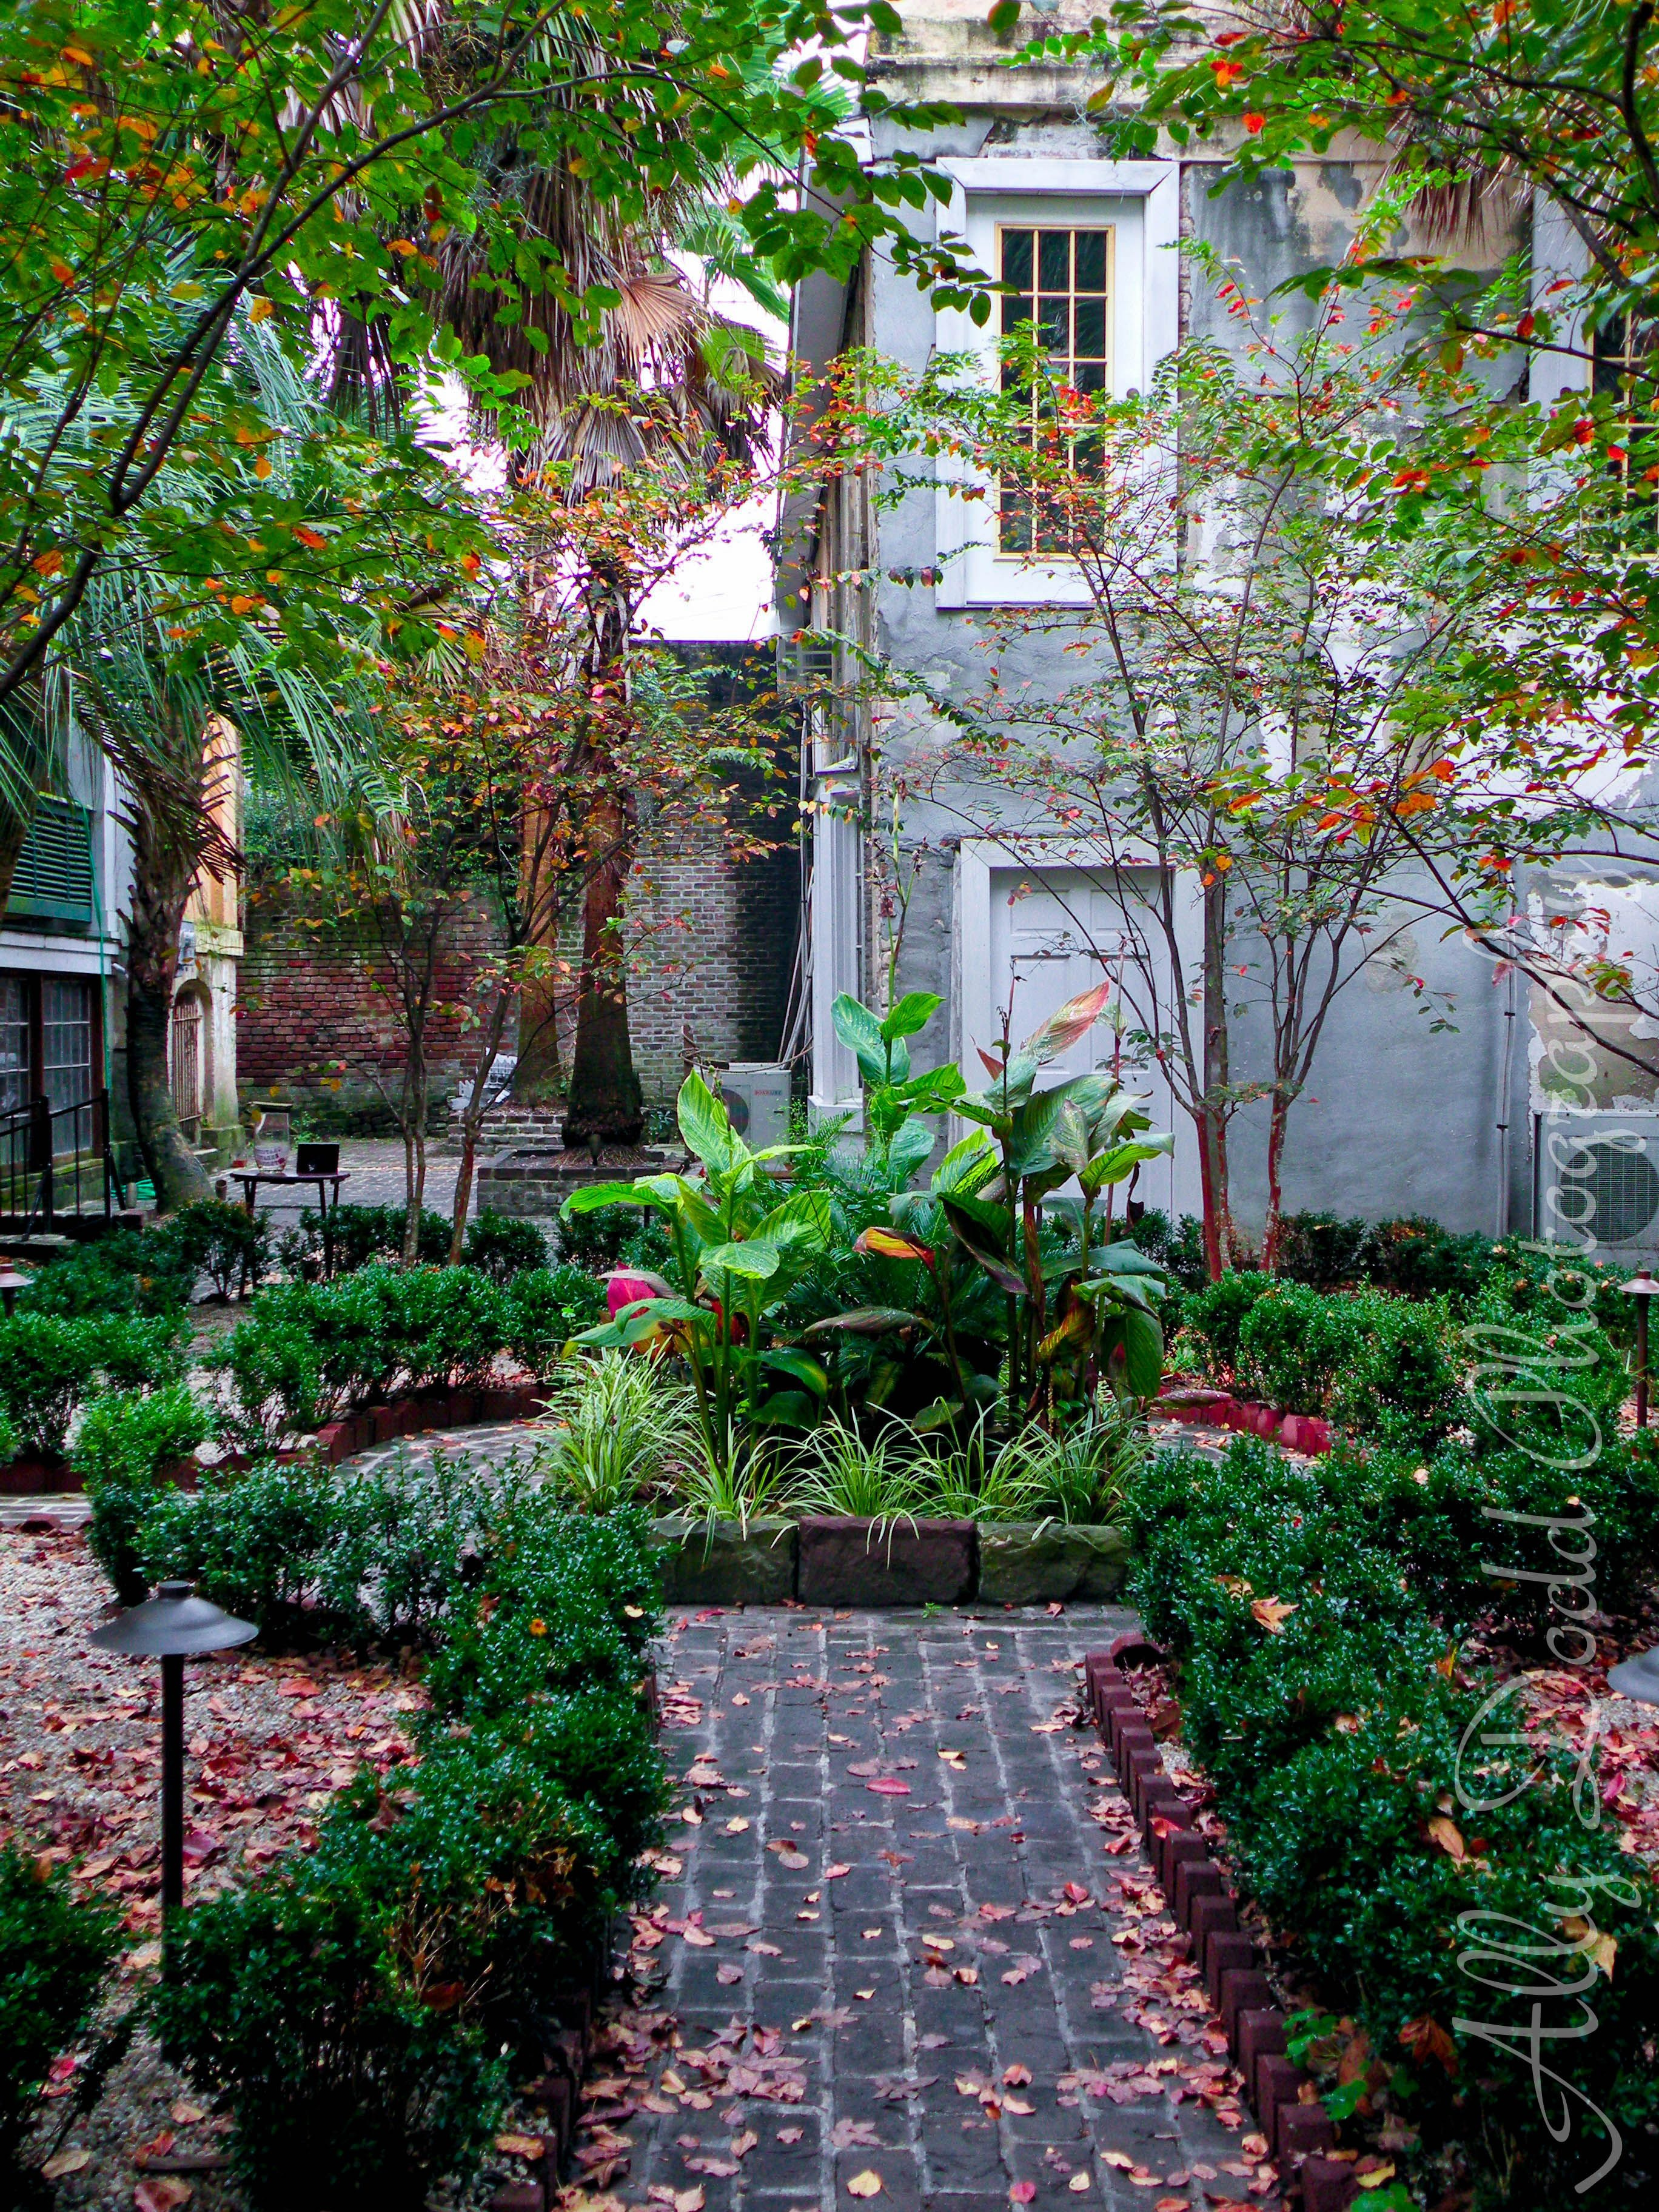 Georgia Garden: My Savannah Images